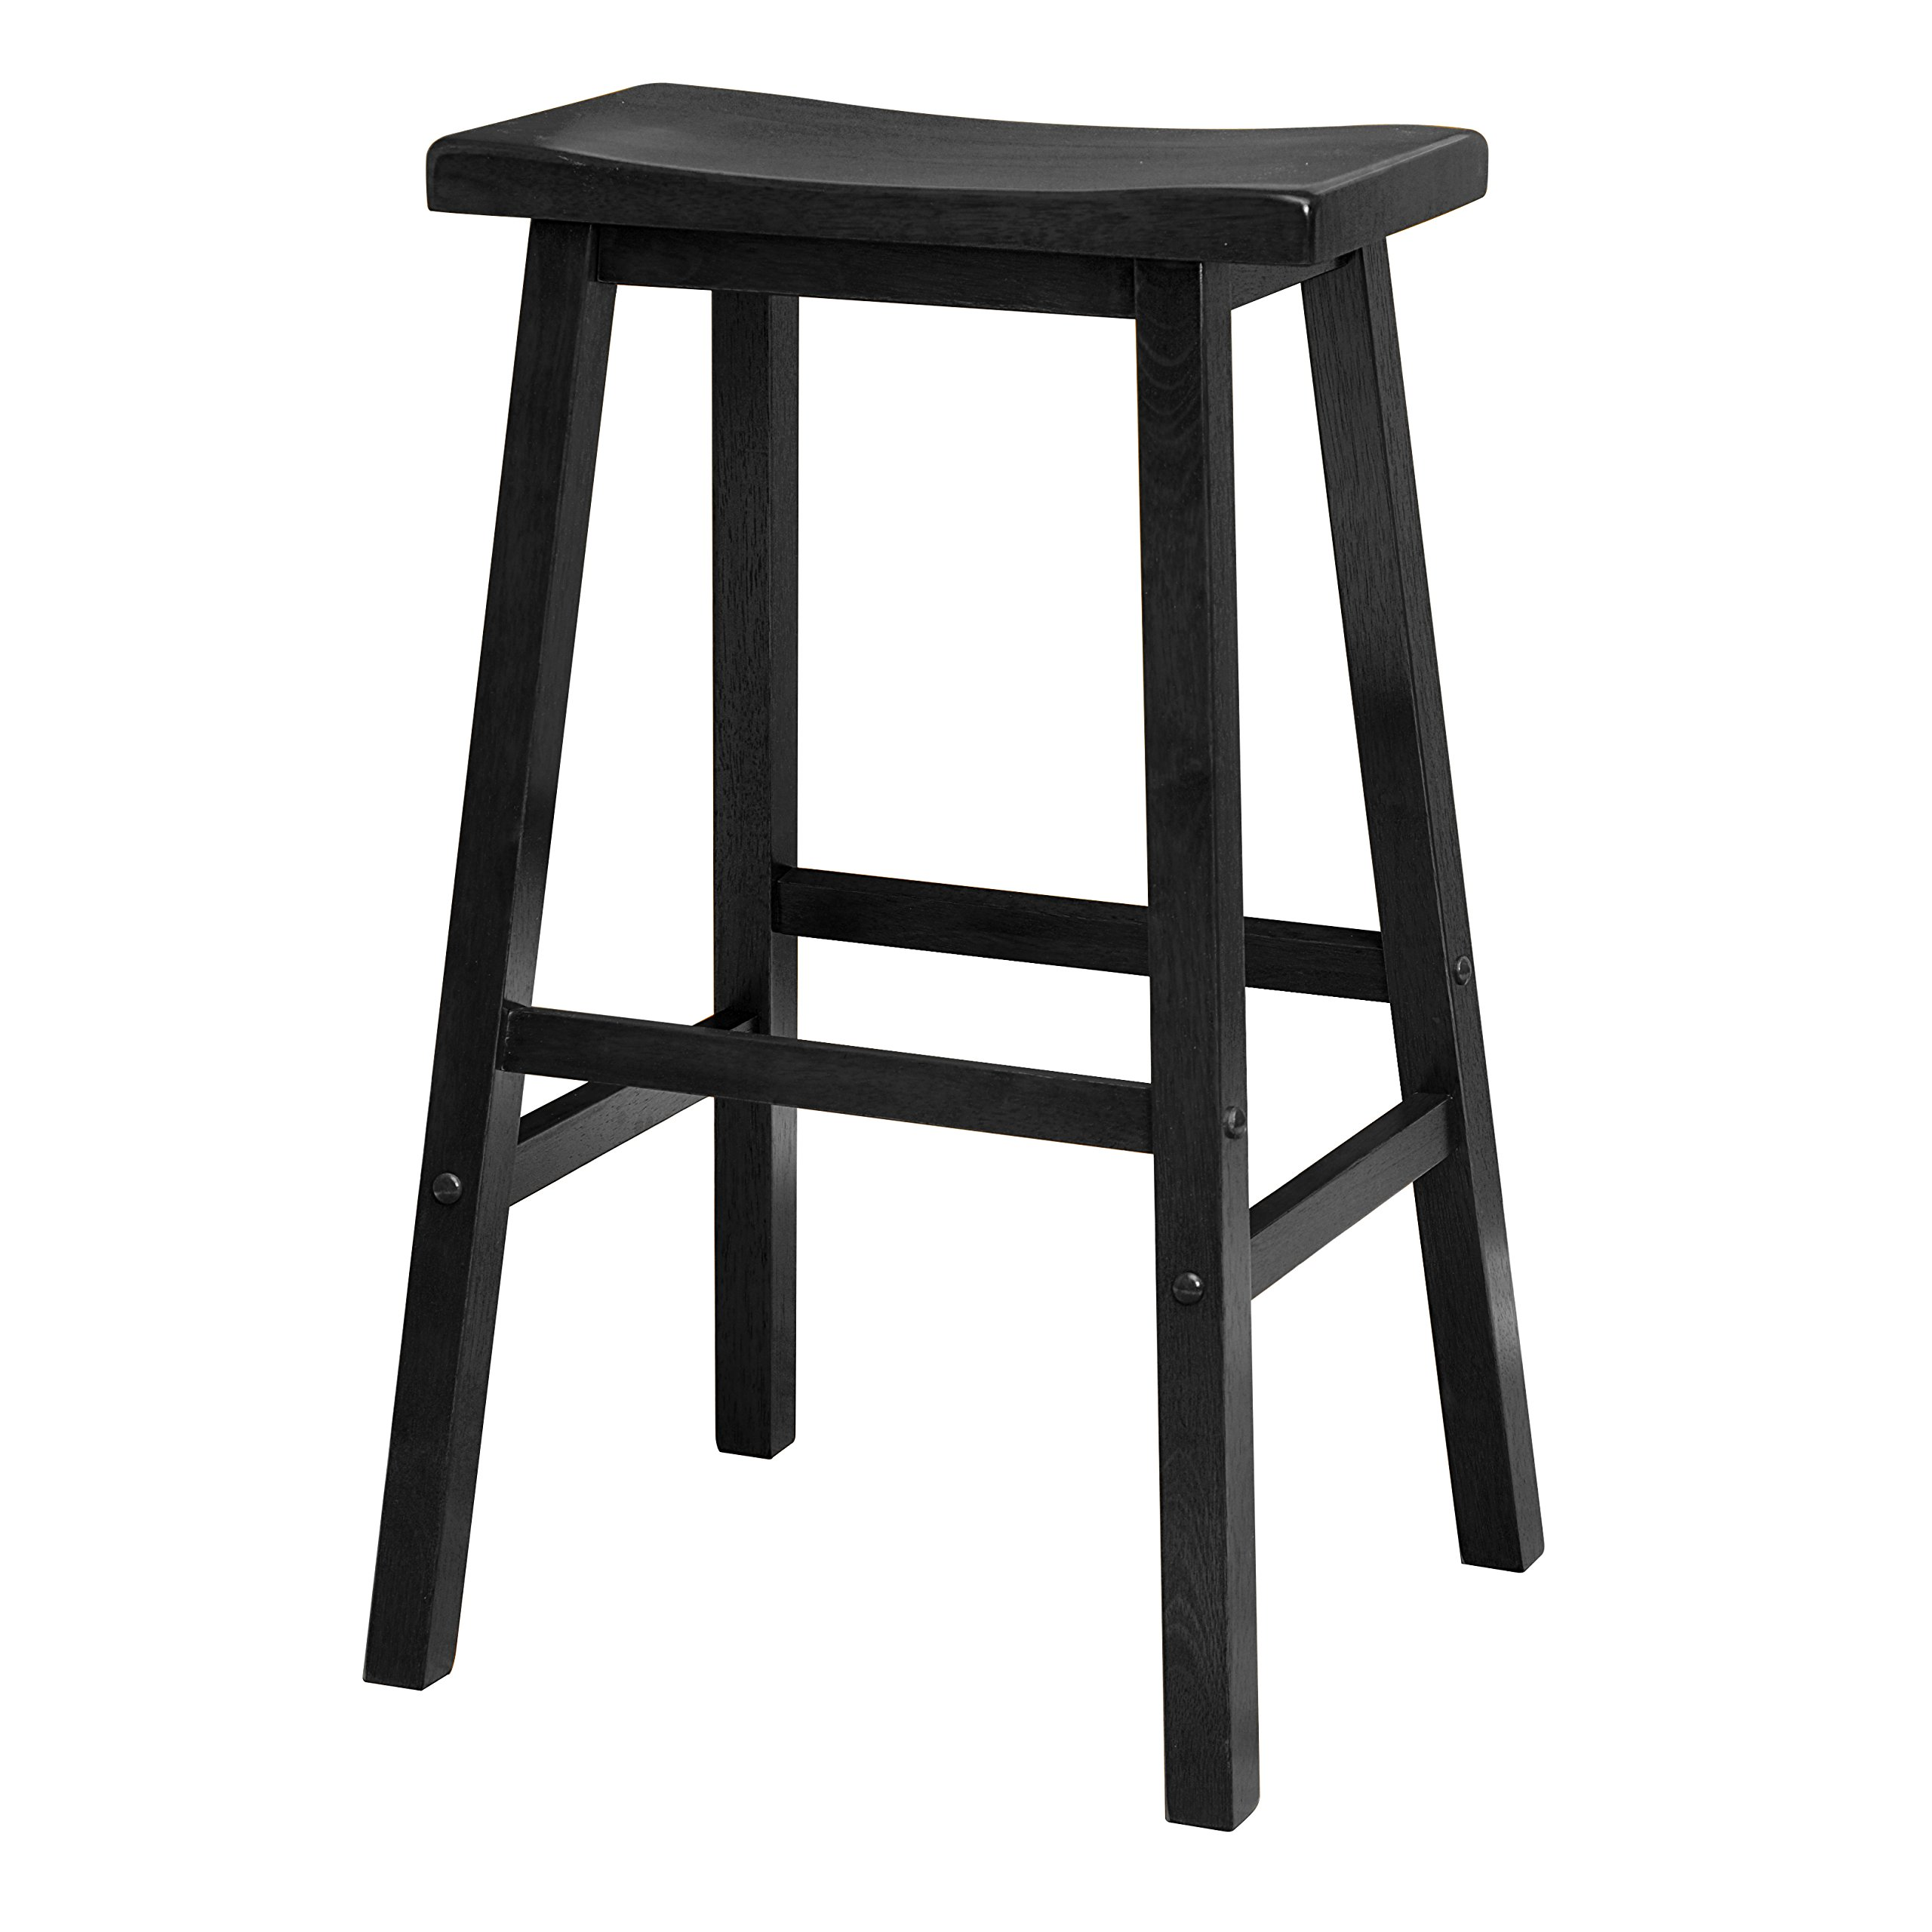 Winsome 20089 Satori Stool, 29'', Black by Winsome